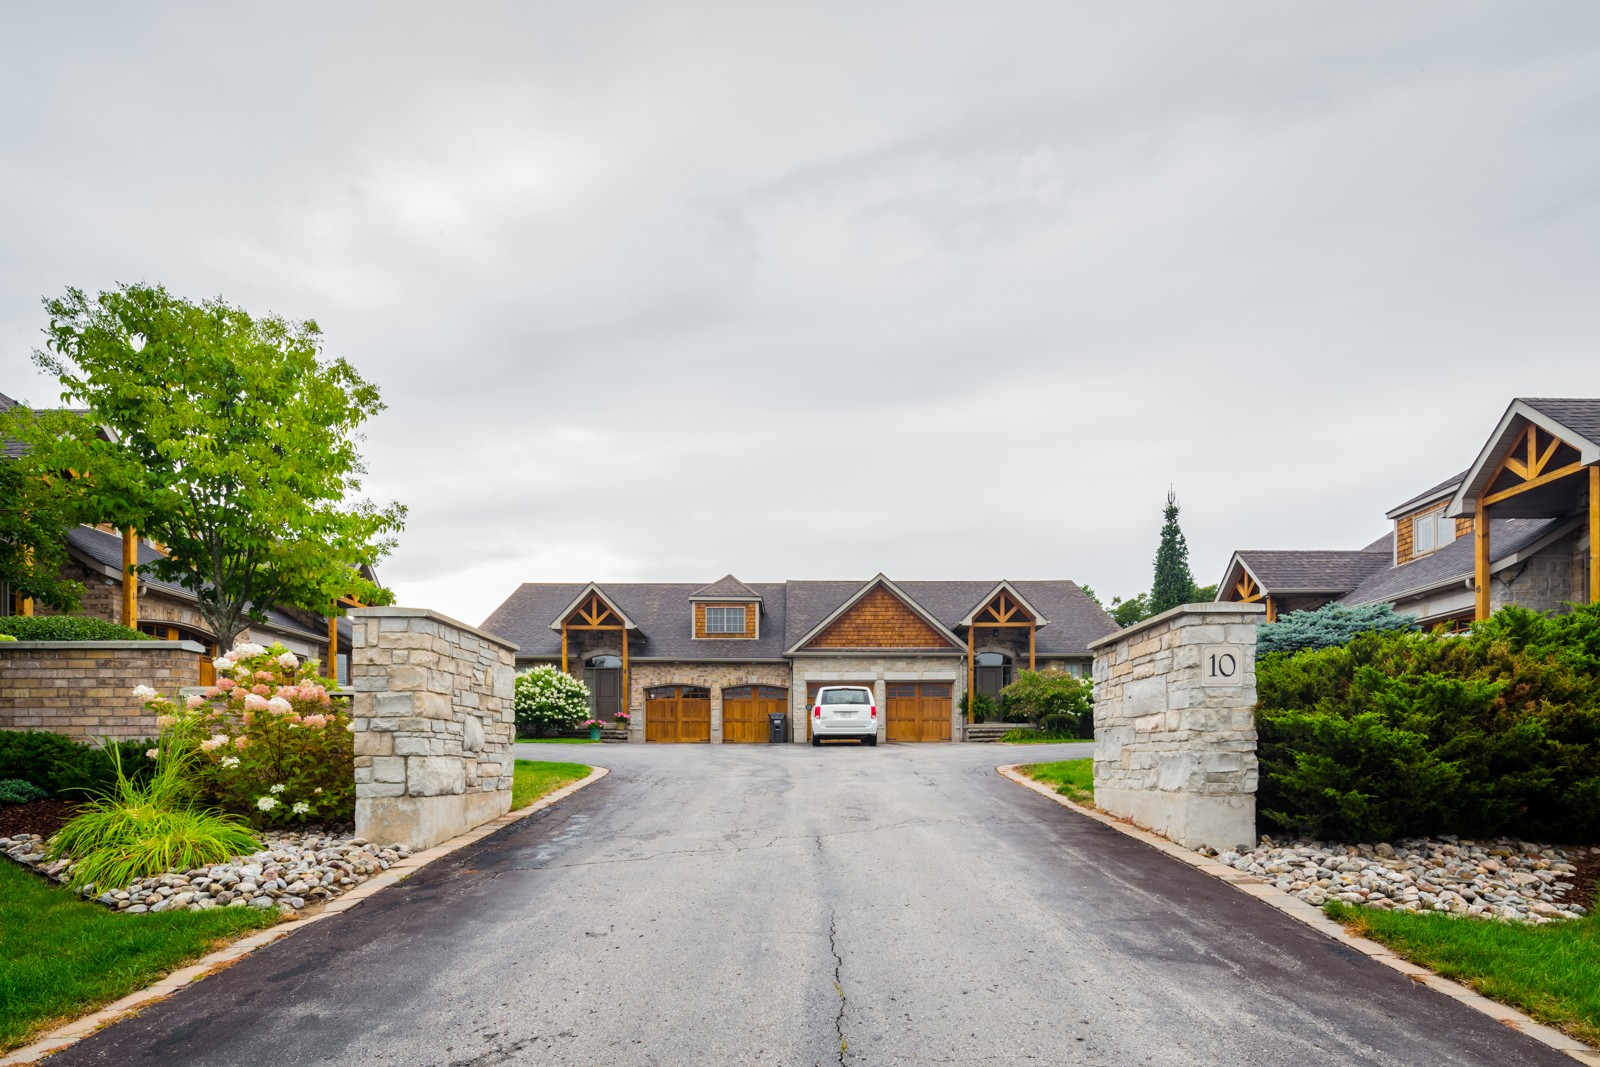 10 Zimmerman Drive Townhouses at 10 Zimmerman Dr, Caledon 1